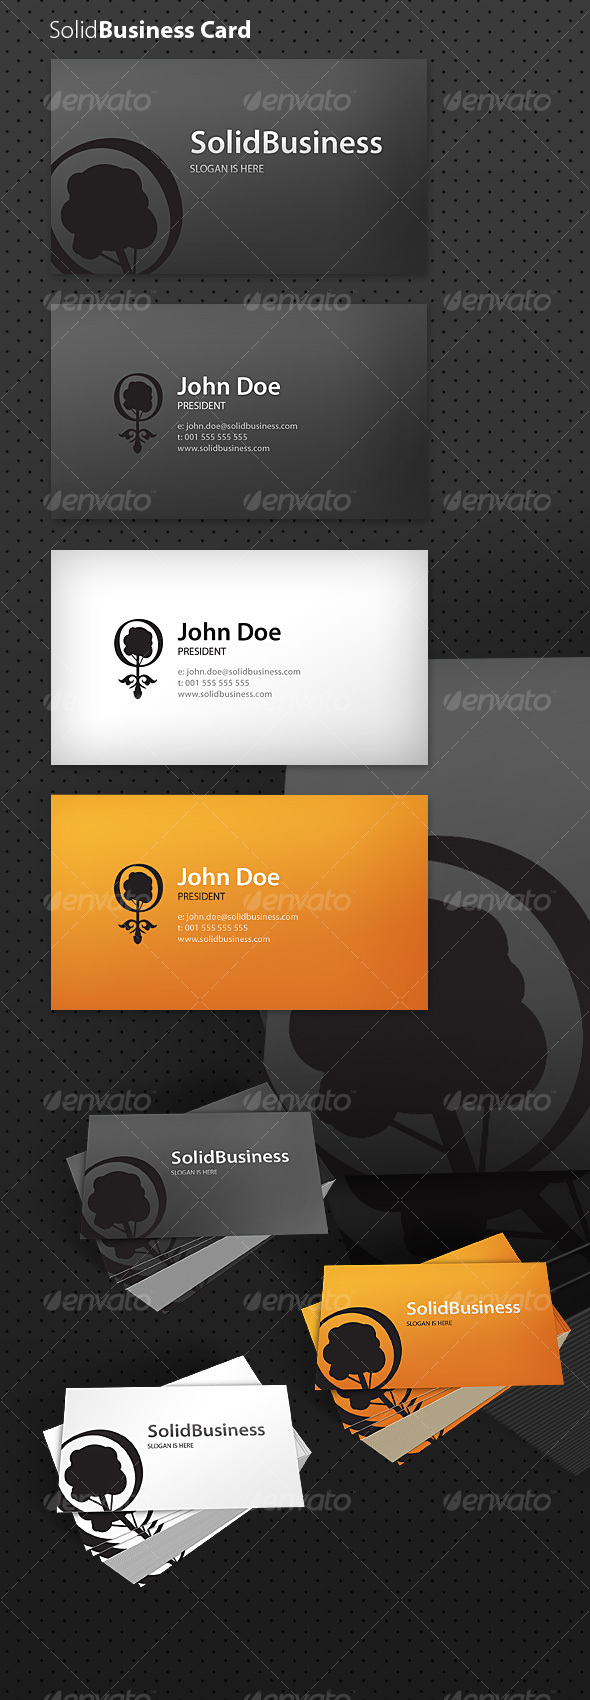 Solid Business Card - Creative Business Cards